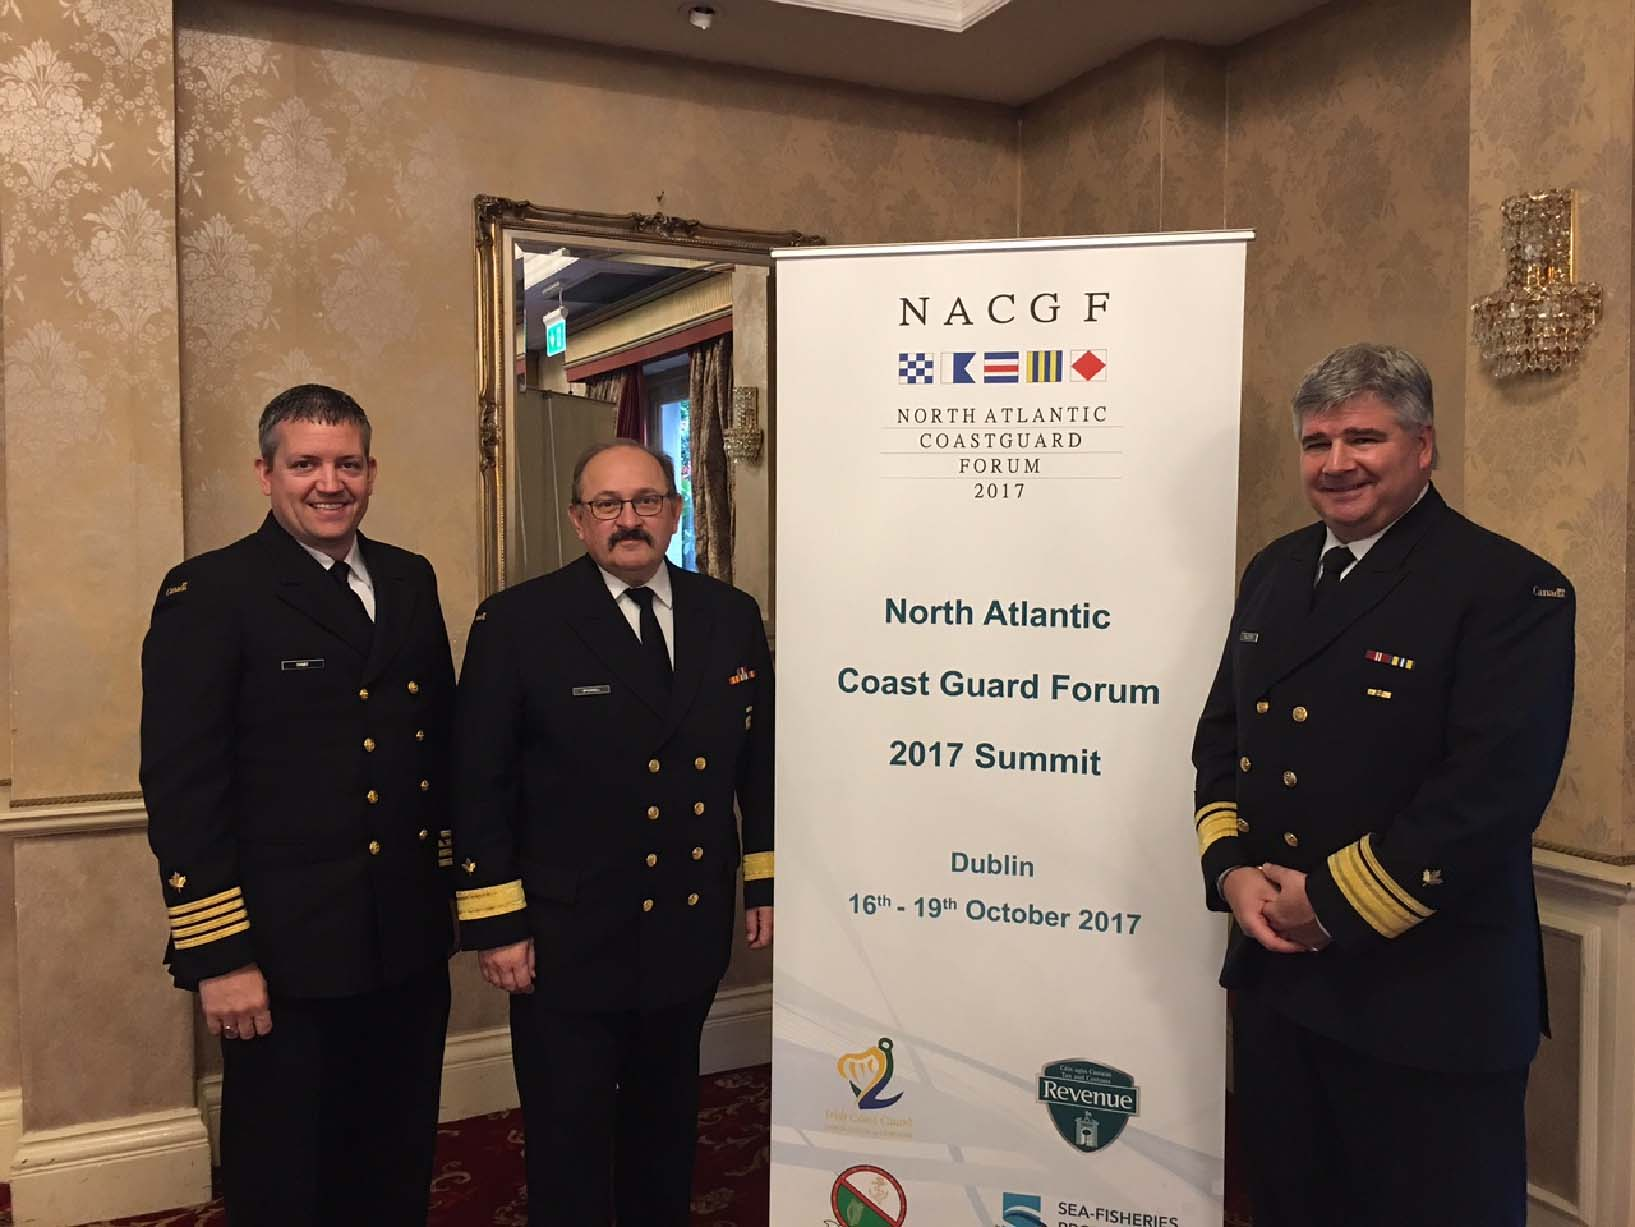 Gary Ivany, senior director, Operational Support, Canadian Coast Guard, Wade Spurrell, assistant commissioner in Atlantic Region and Mario Pelletier, deputy commissioner, at the North Atlantic Coast Guard Forum in Dublin, Ireland.